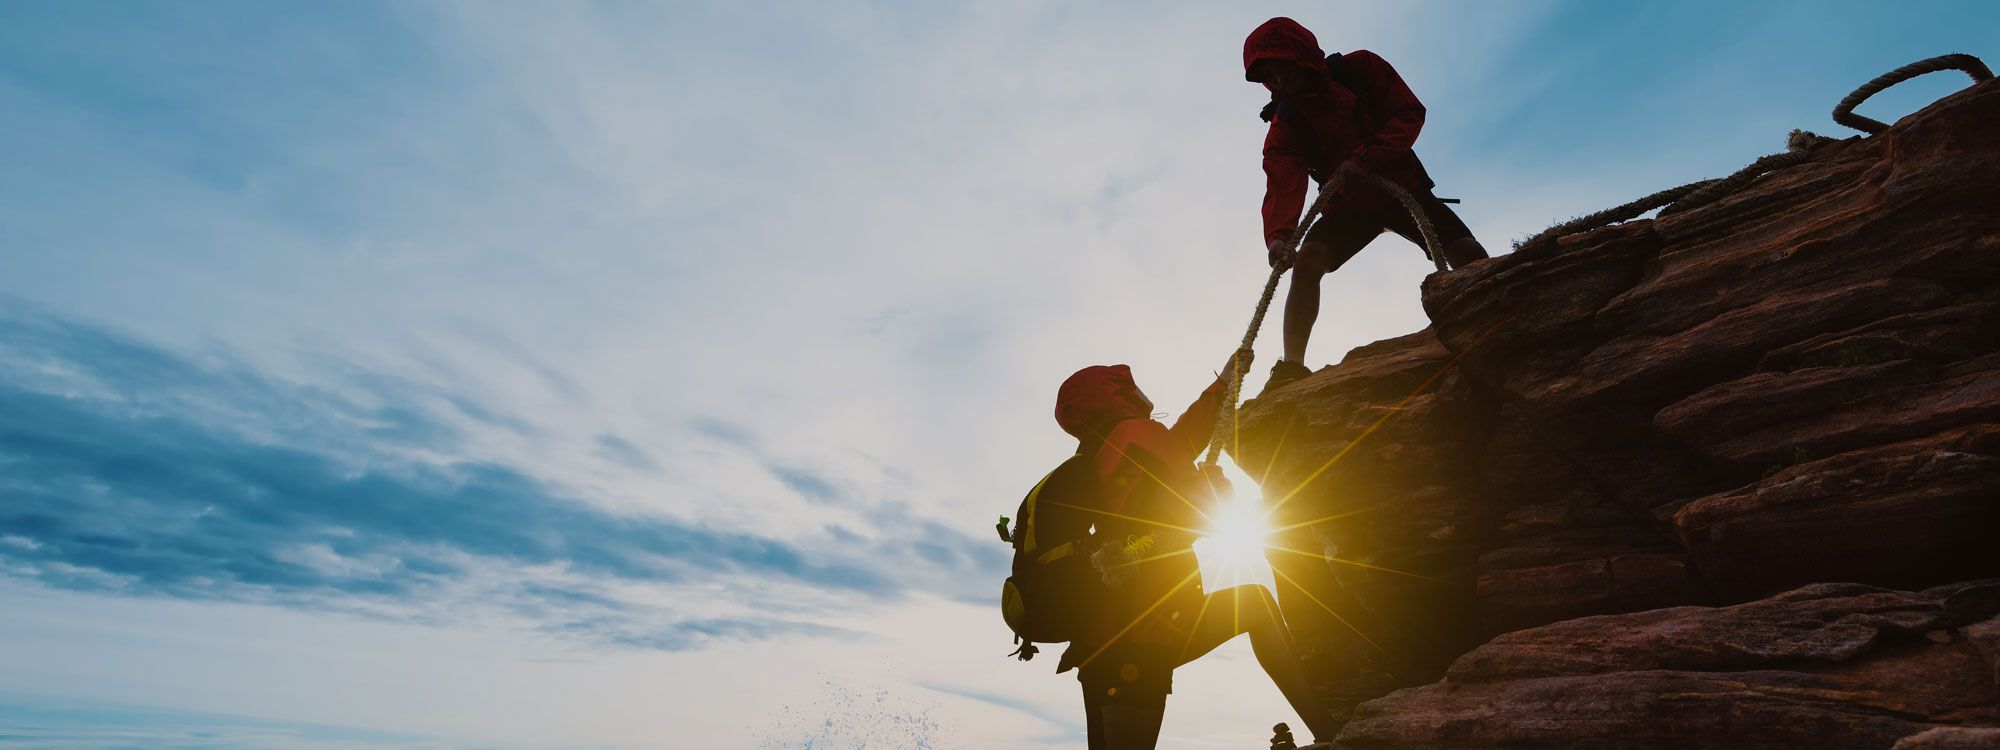 Climbers helping each other up mountain